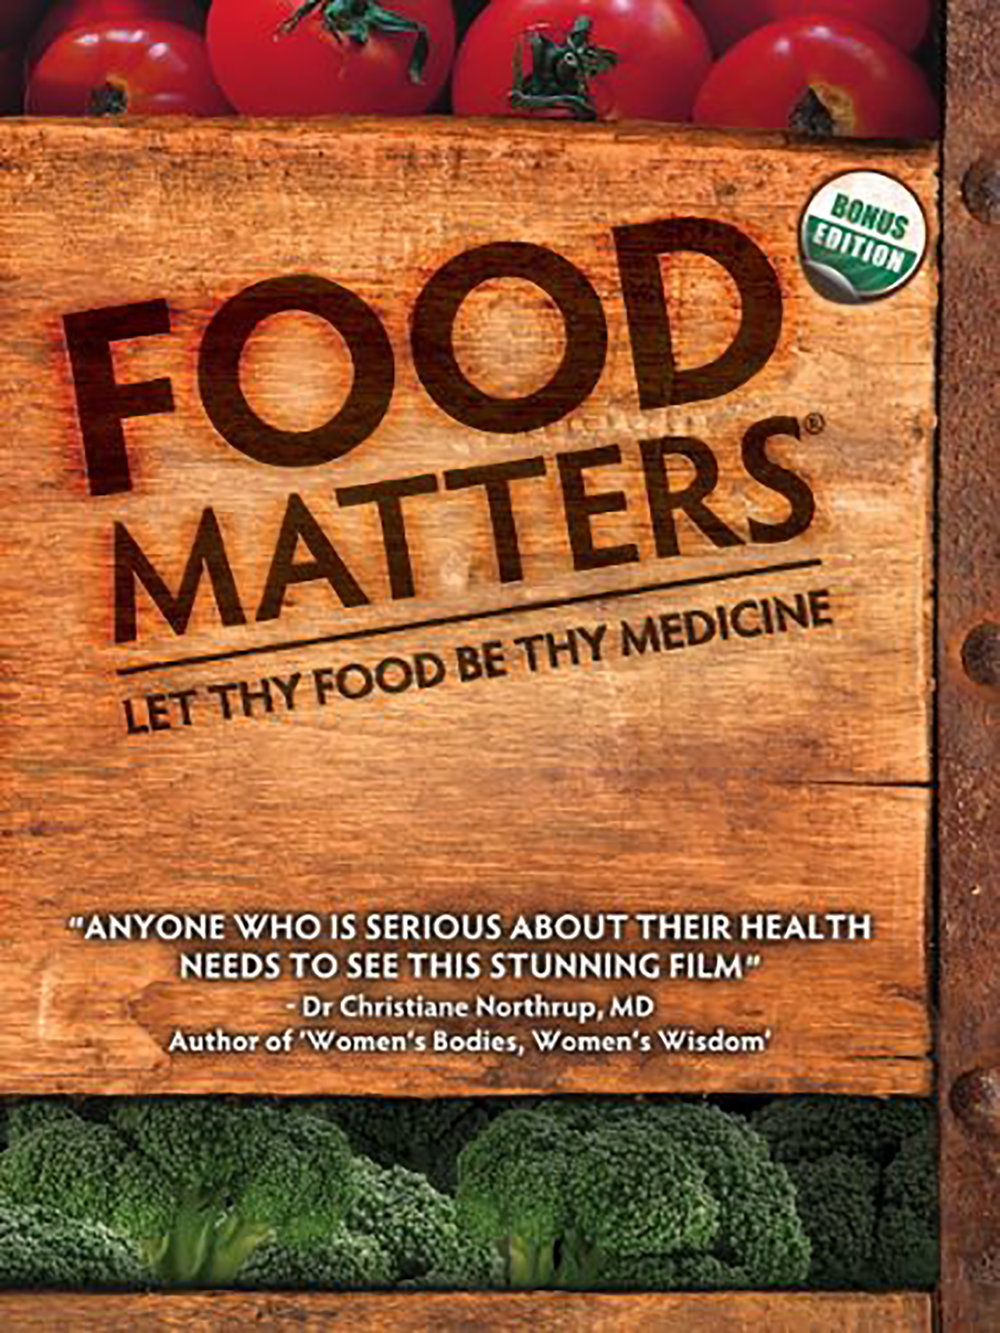 Food Matter  examines how the food we eat can help or hurt our health. Nutritionists, naturopaths, doctors, and journalists weigh in on topics organic food, food safety, raw foodism, and nutritional therapy.